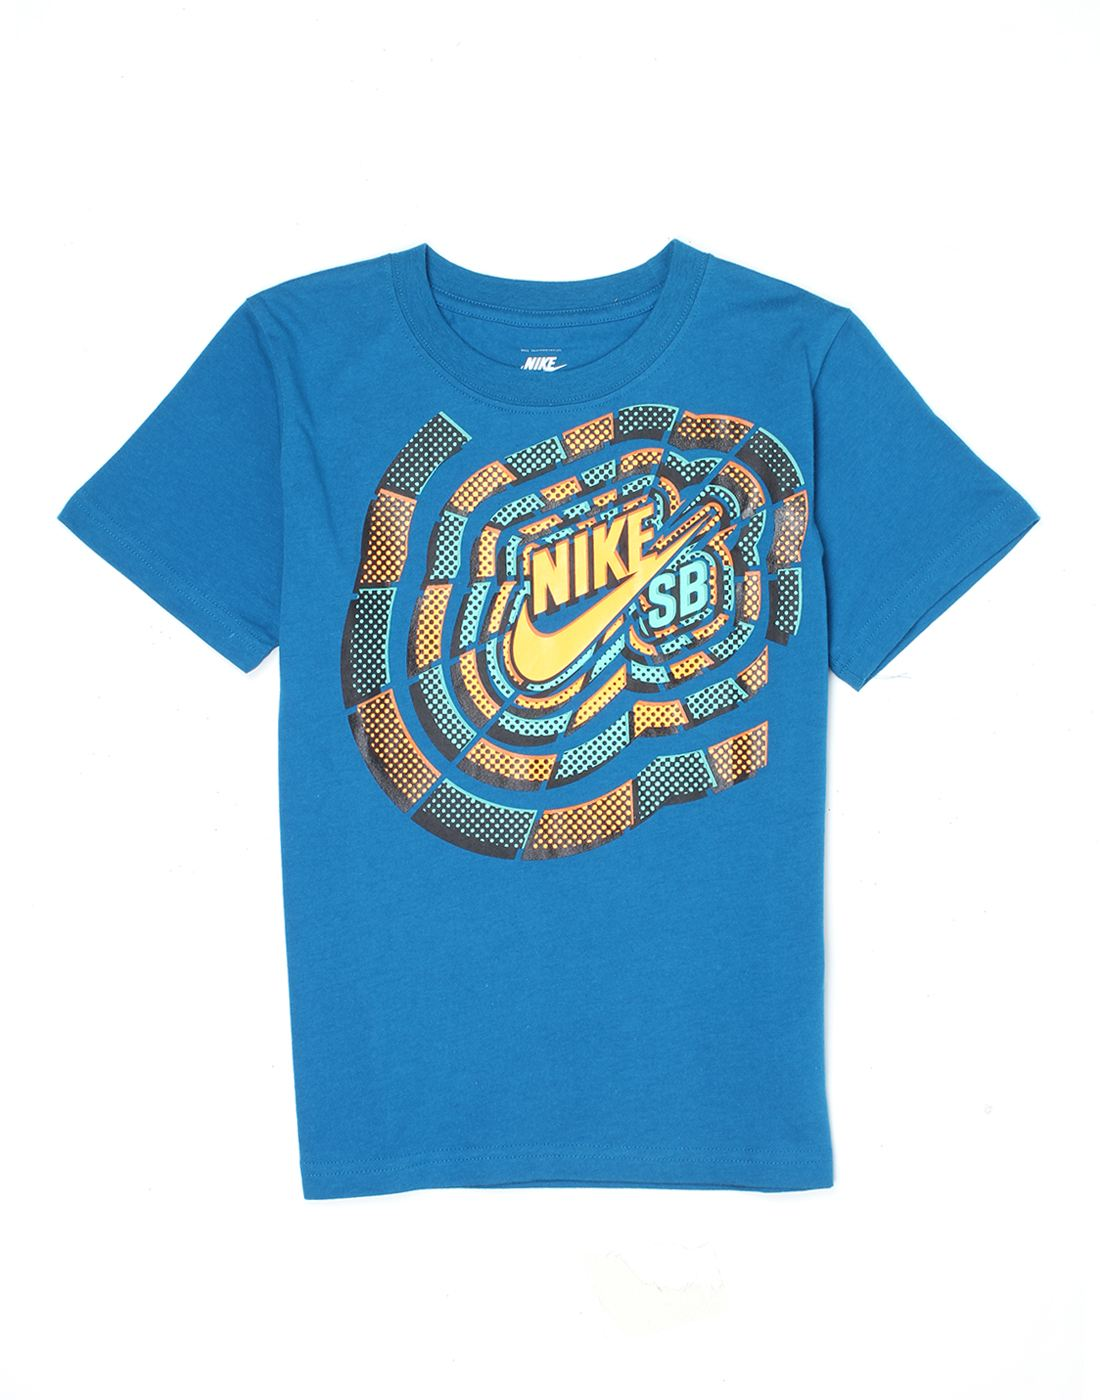 Nike Blue Cotton Boys T-Shirt